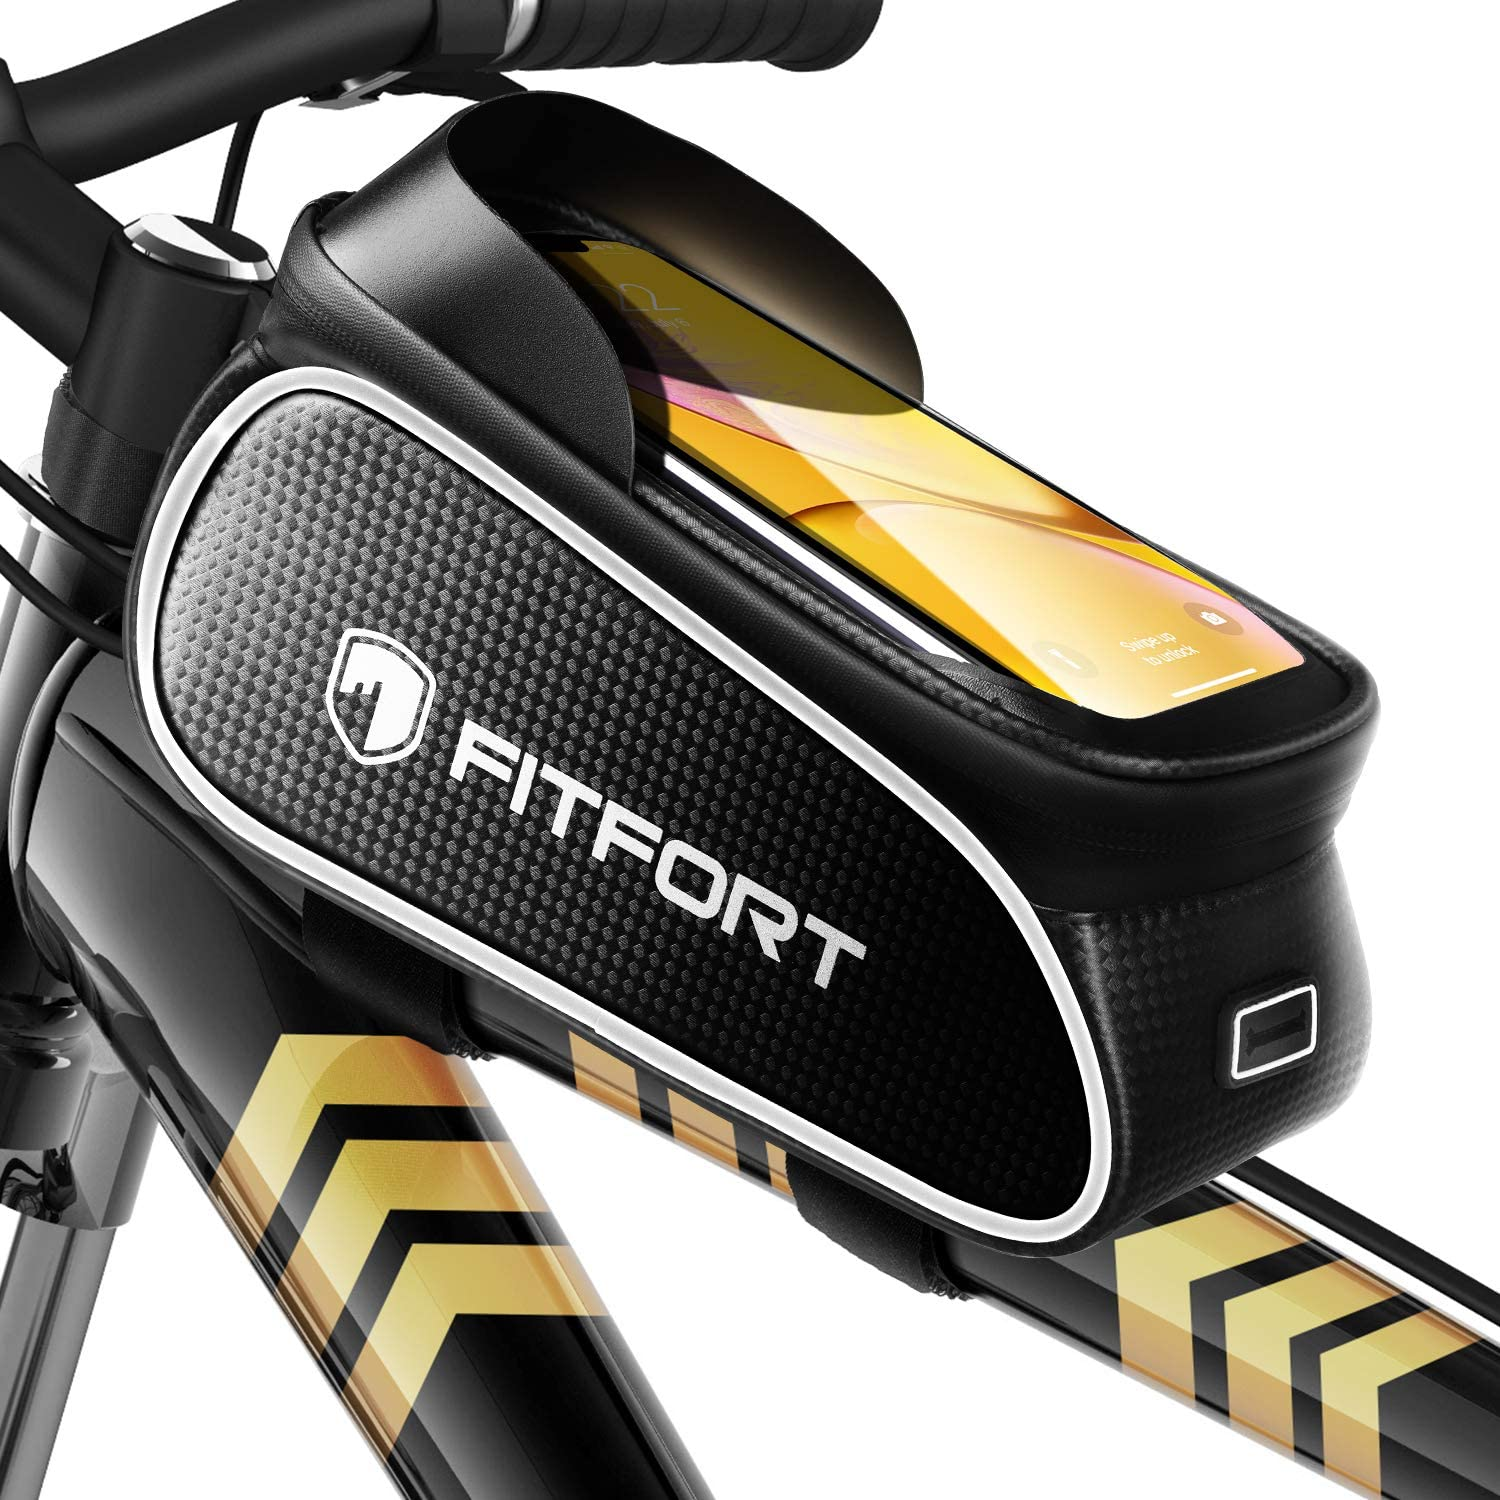 Fitfort Bike Frame Bag Waterproof Bike Accessories With Touch Screen Case Large Capacity Bike Phone Bag With Sun Visor For Iphone Samsung And Android Phones Under 6 7 Amazon Co Uk Sports Outdoors